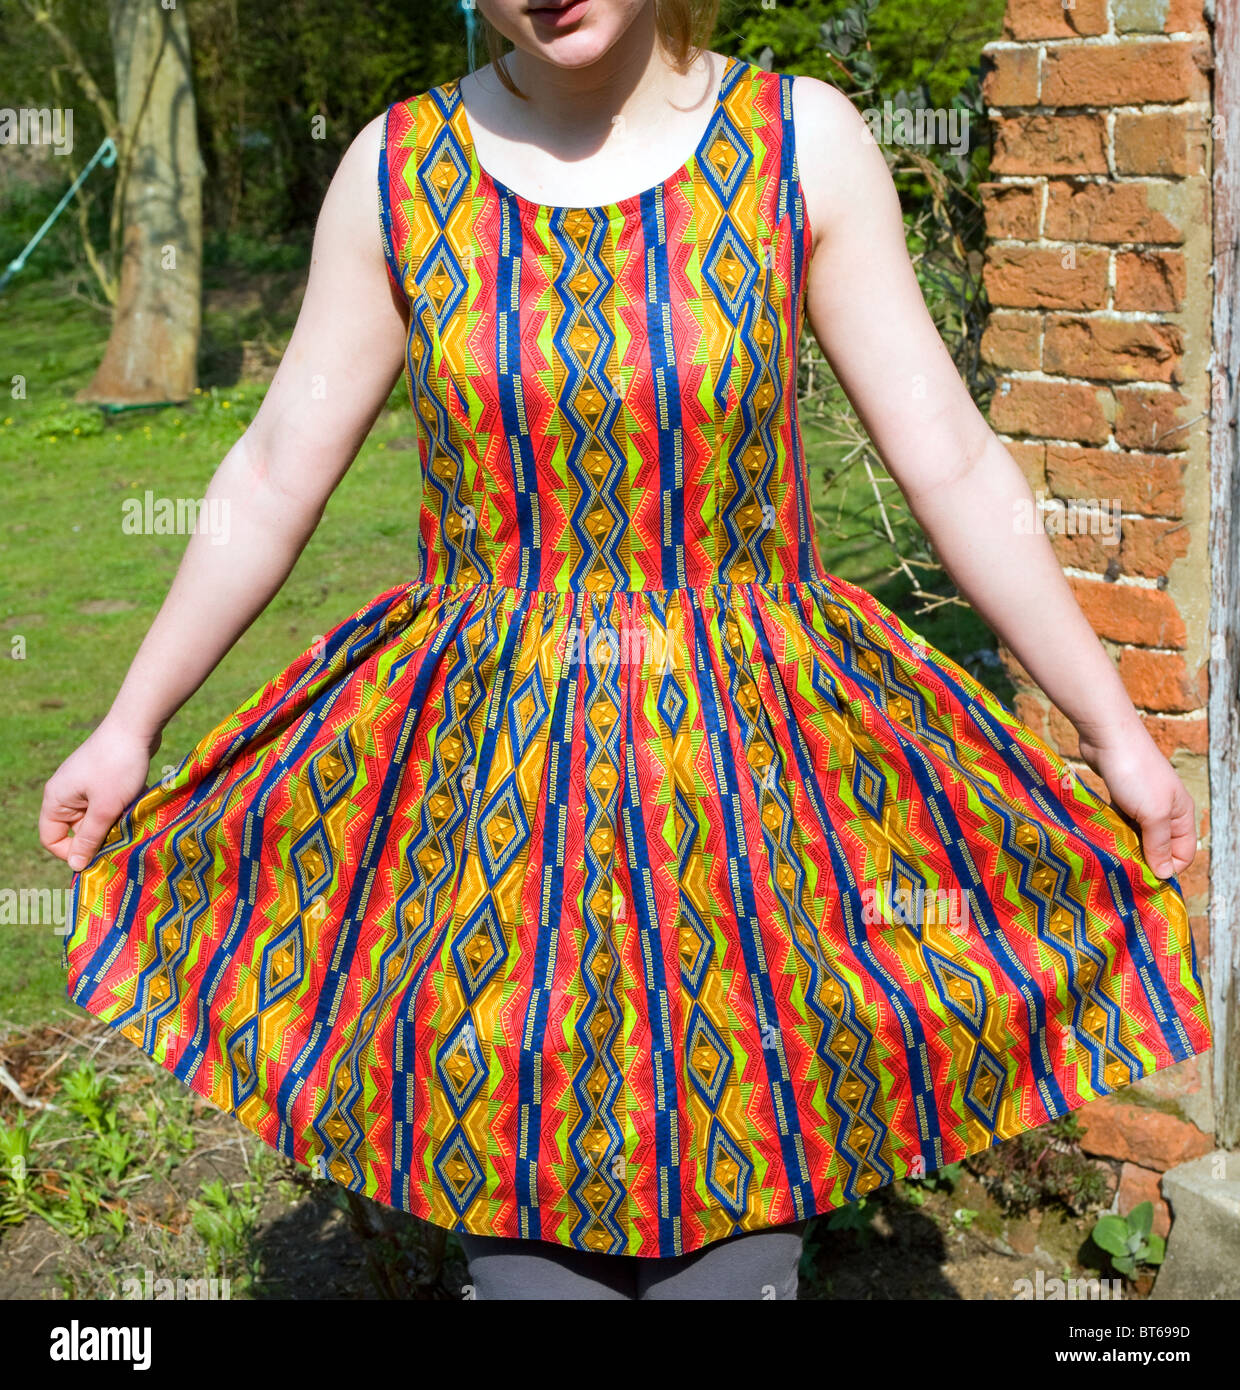 Young woman models home made dress - Stock Image